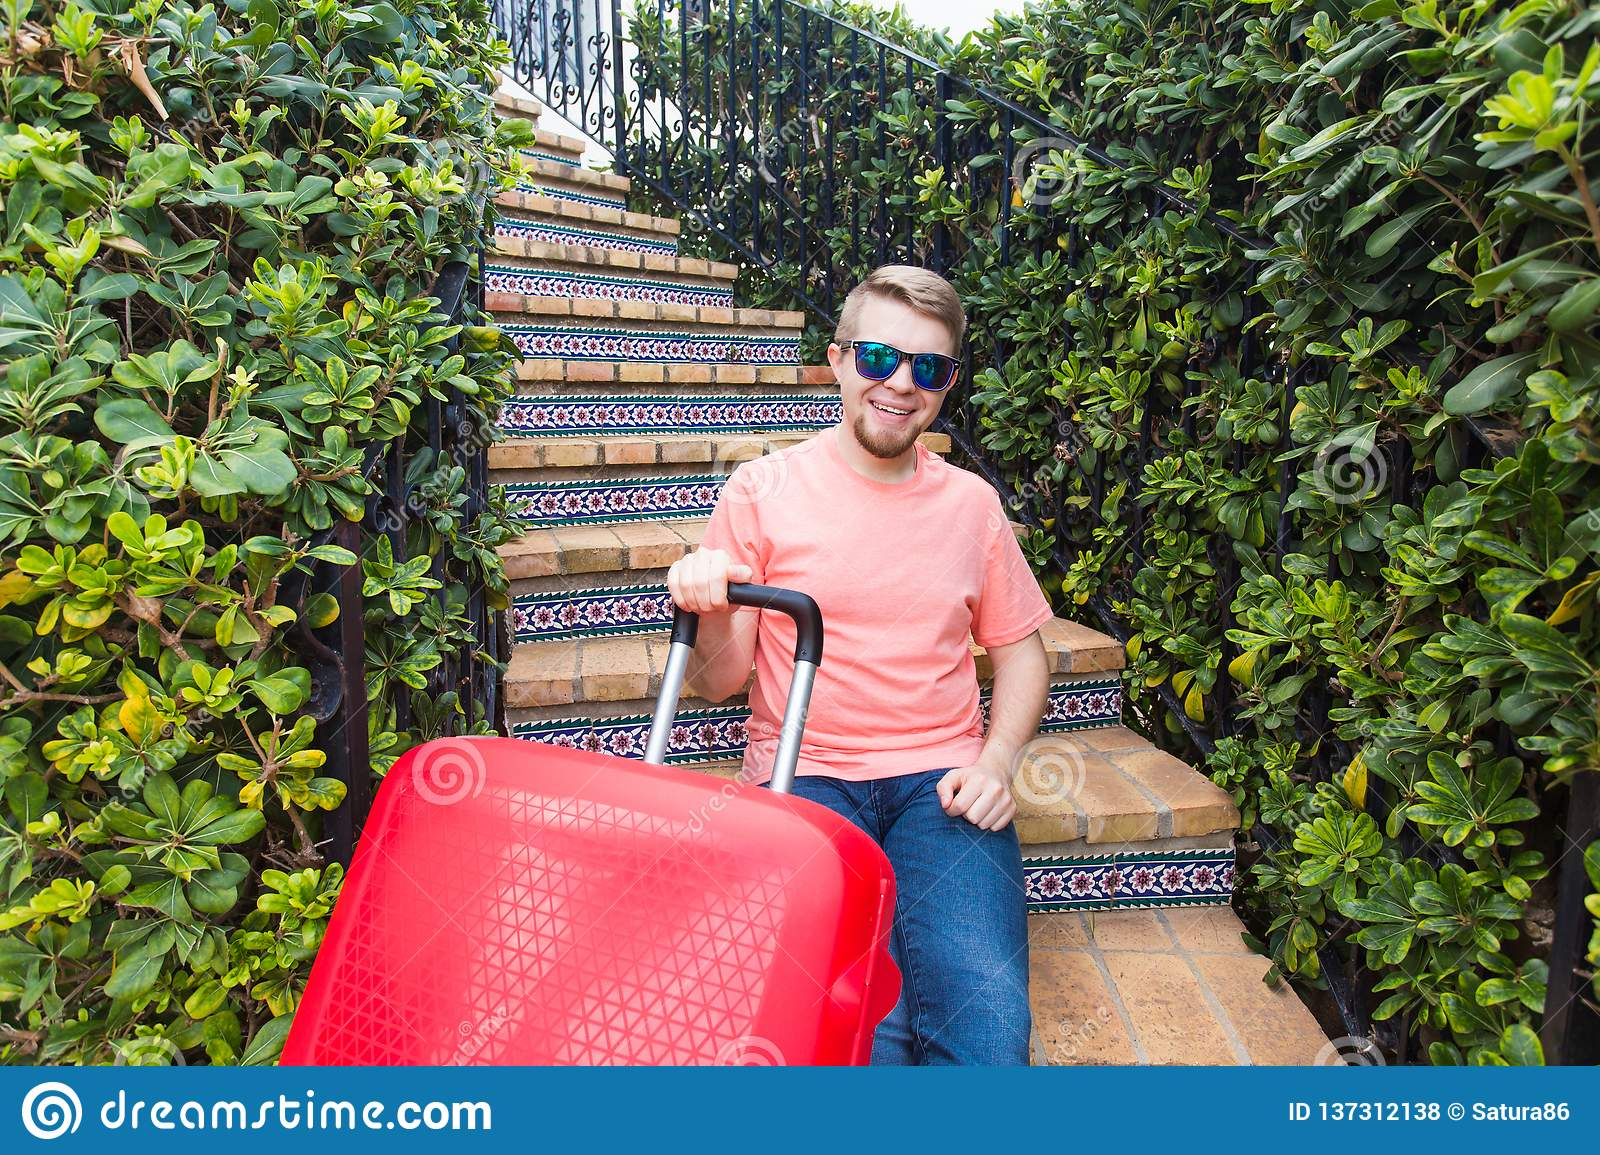 Holiday, travelling and baggage concept - young man with suitcase sitting on stairs